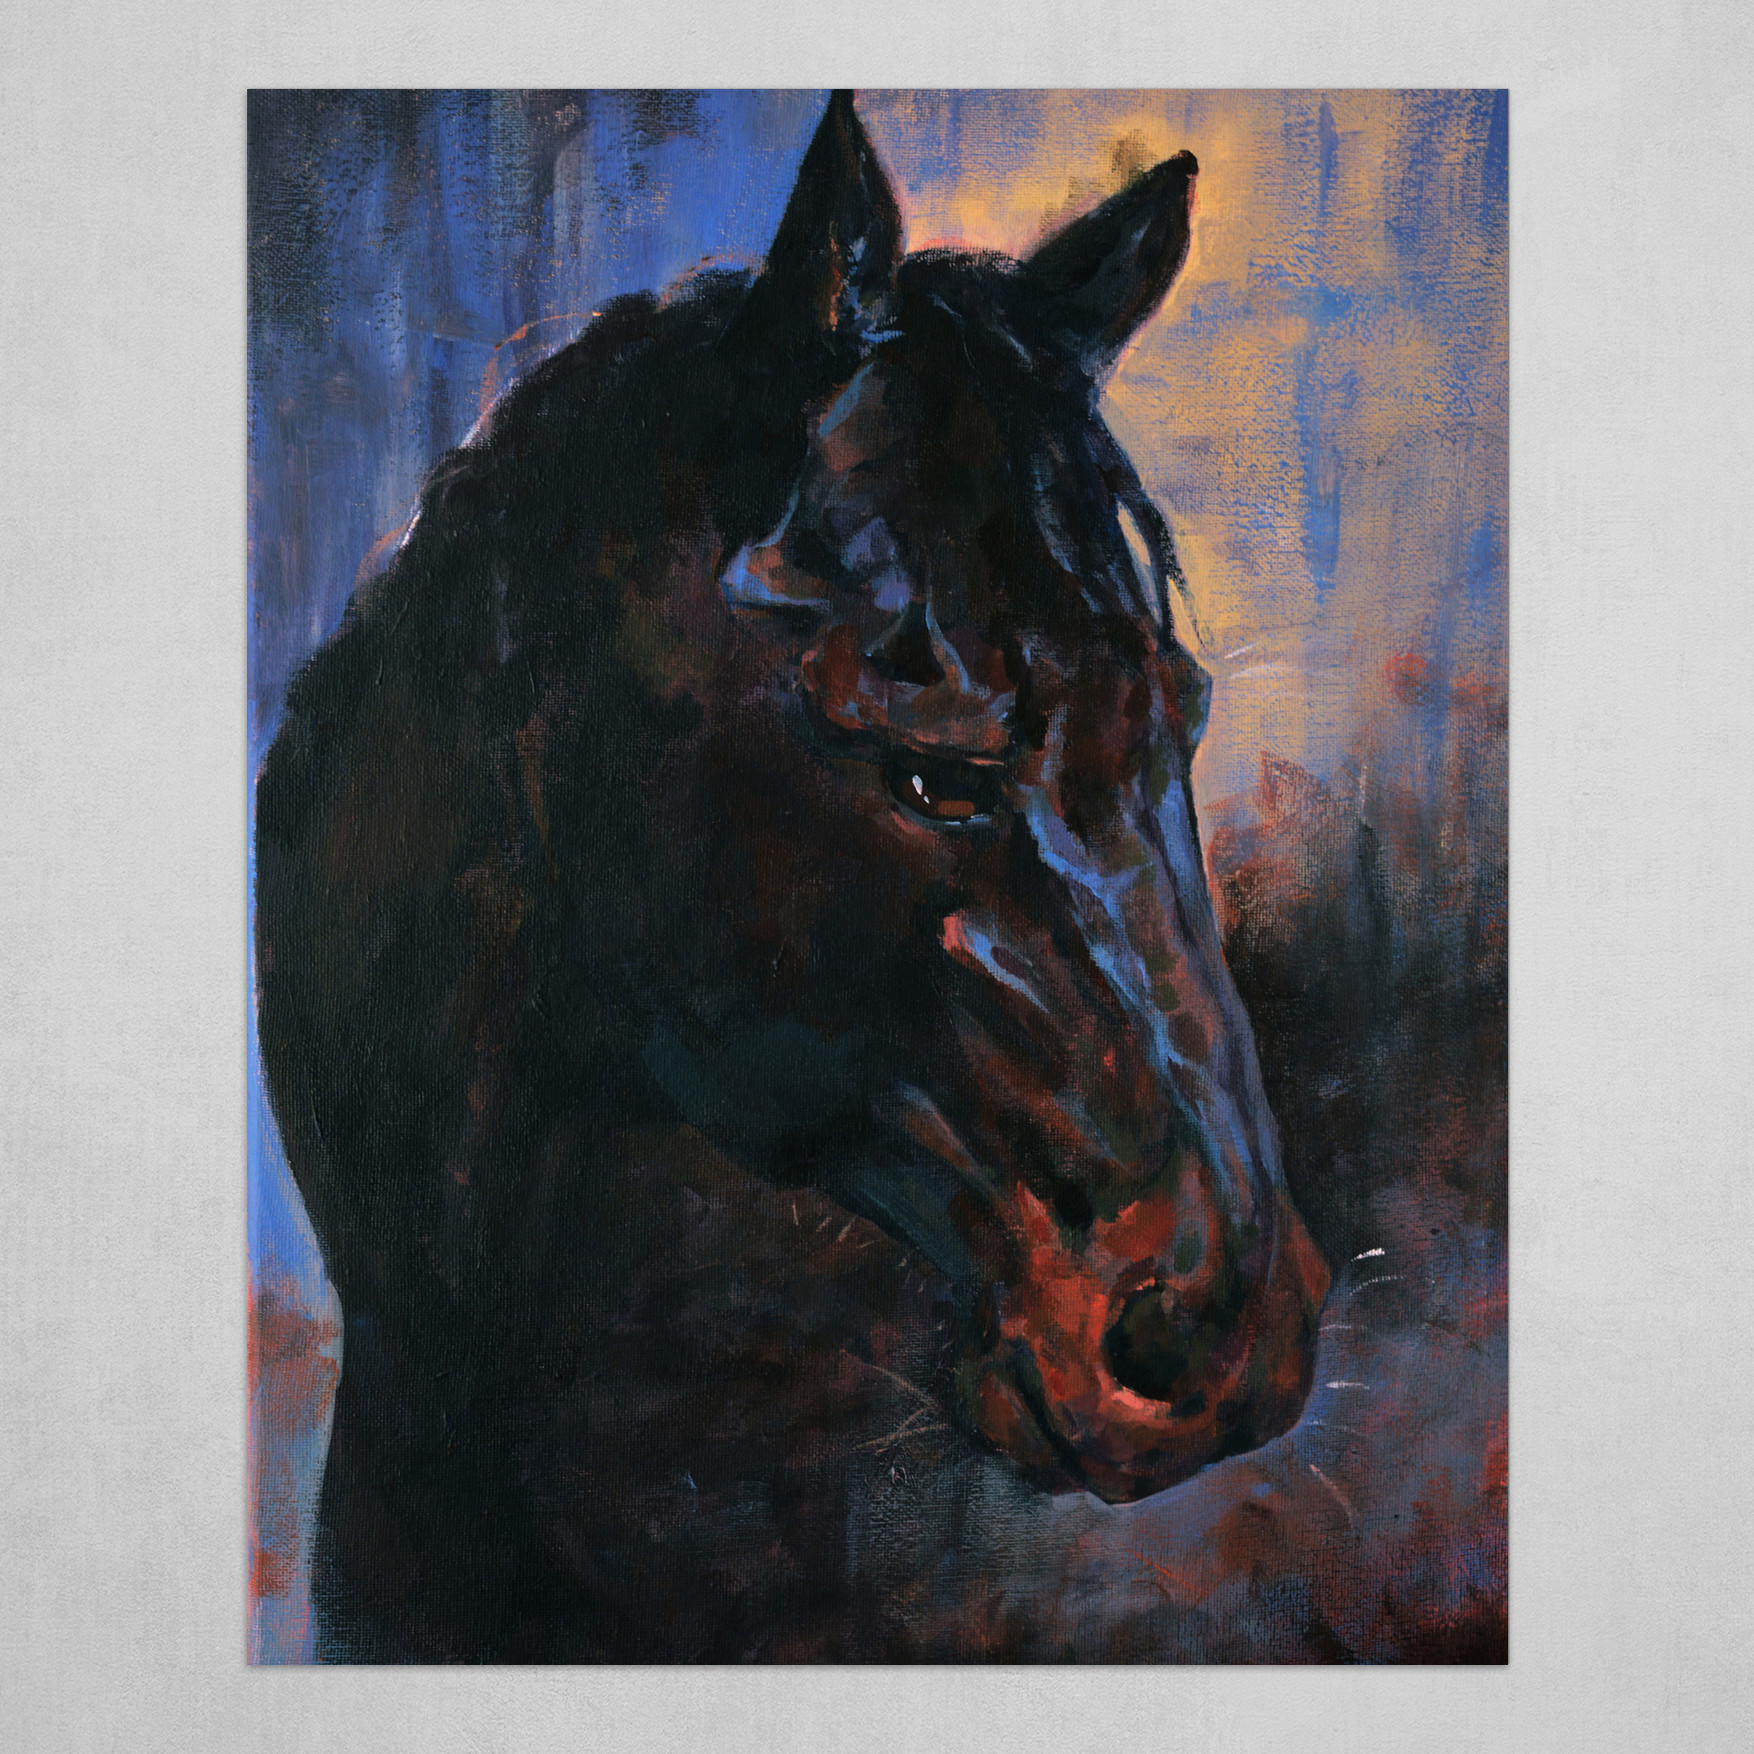 Black Horse Art Poster By Yuwei Li